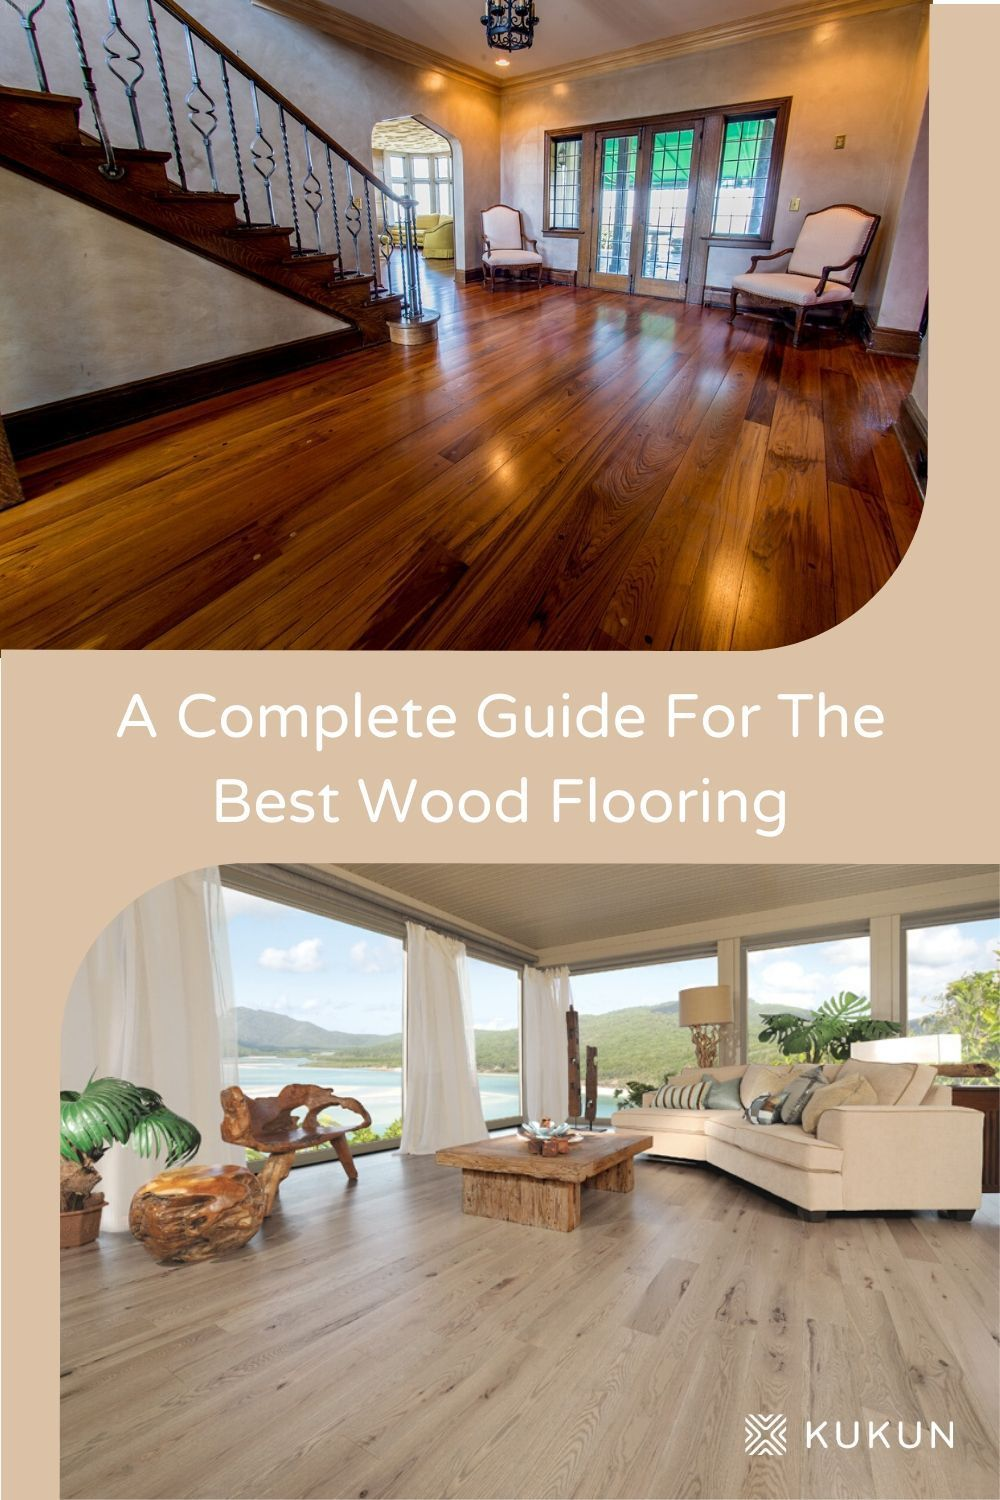 Best Wood Flooring A Complete Guide For A Homeowner In 2020 Best Wood Flooring Wood Flooring Options Wood Floors